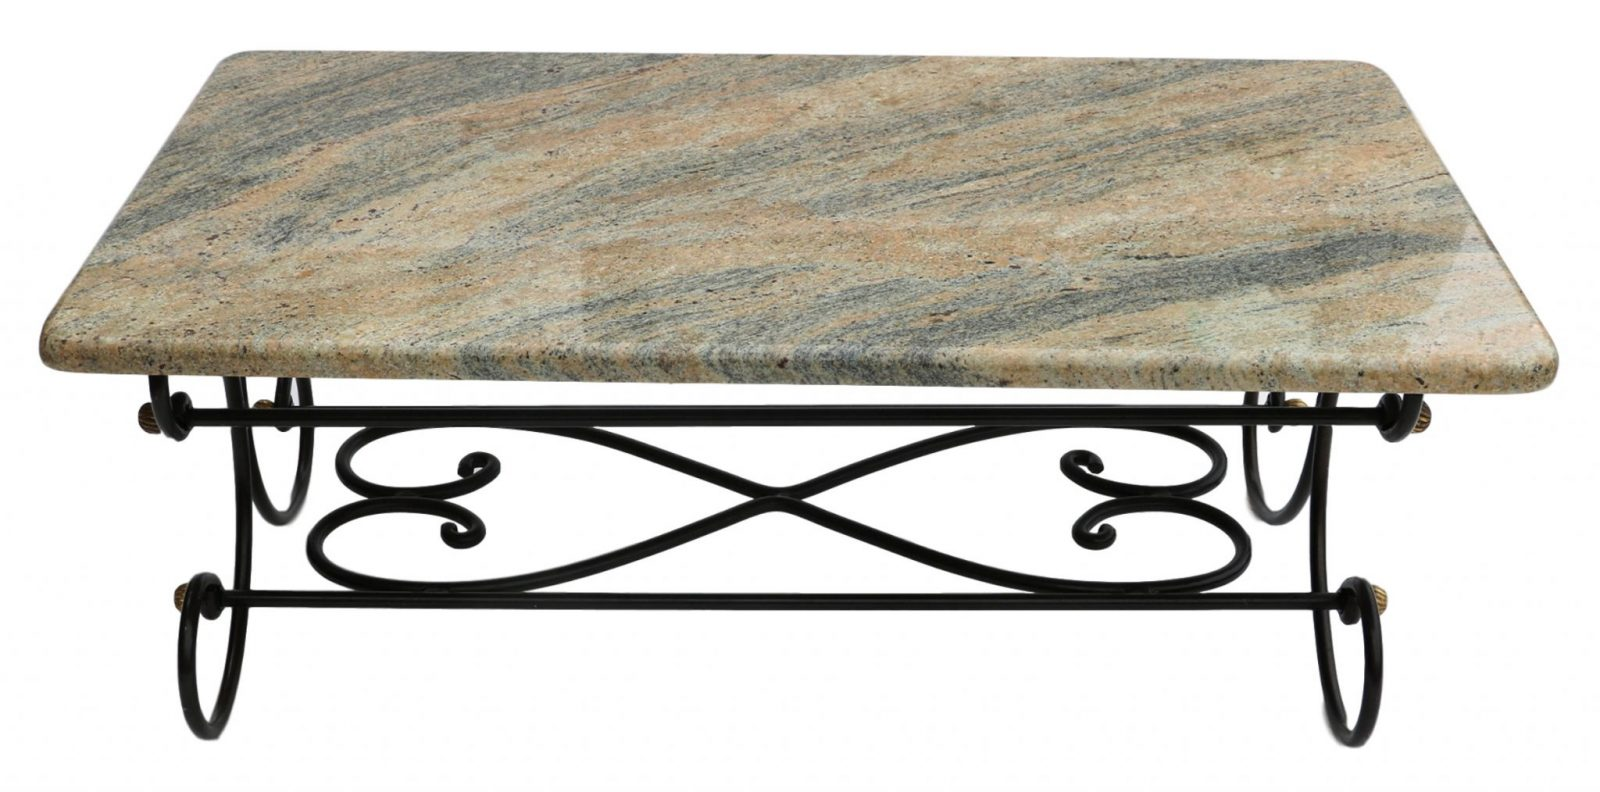 ... Granite Topped Coffee Table Wrought Iron Metal Base. 🔍